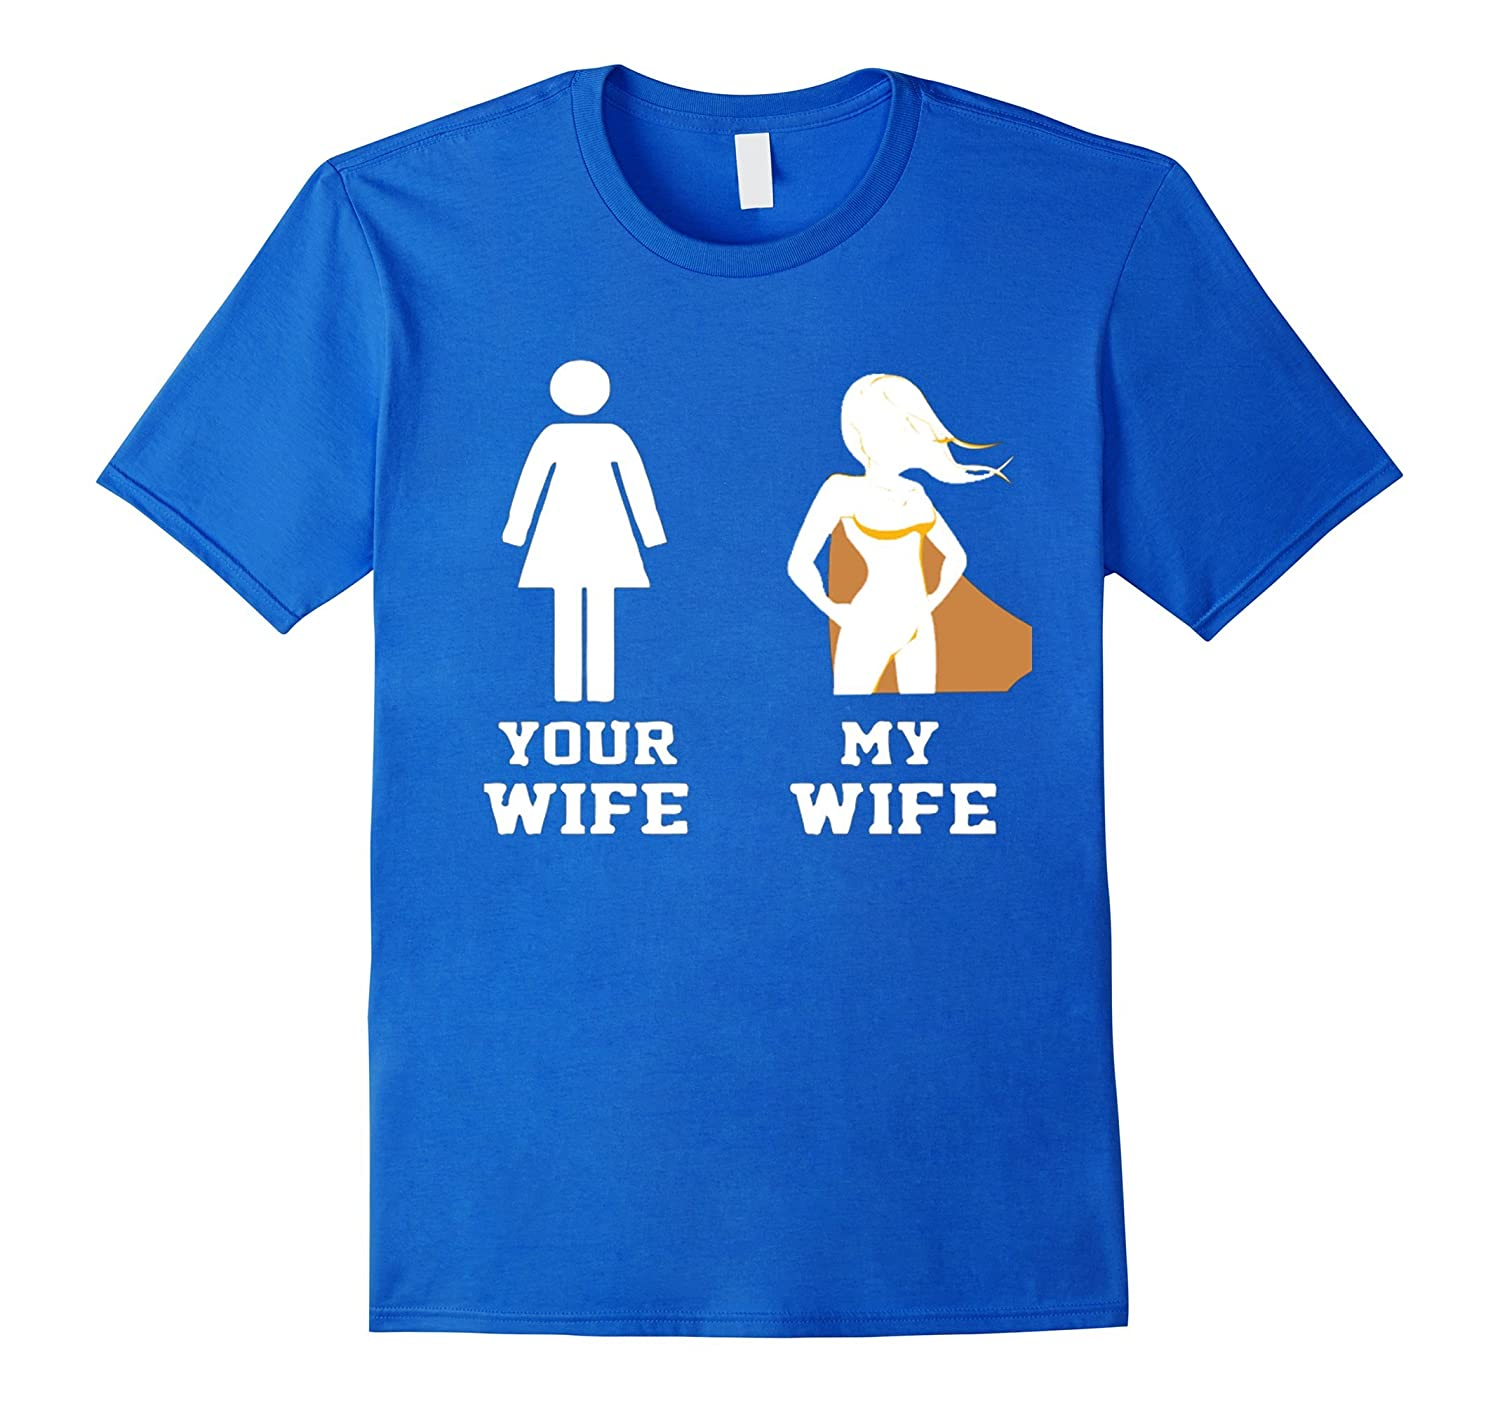 Your wifi my wife T-shirt - Your wife my wife shirt-Vaci